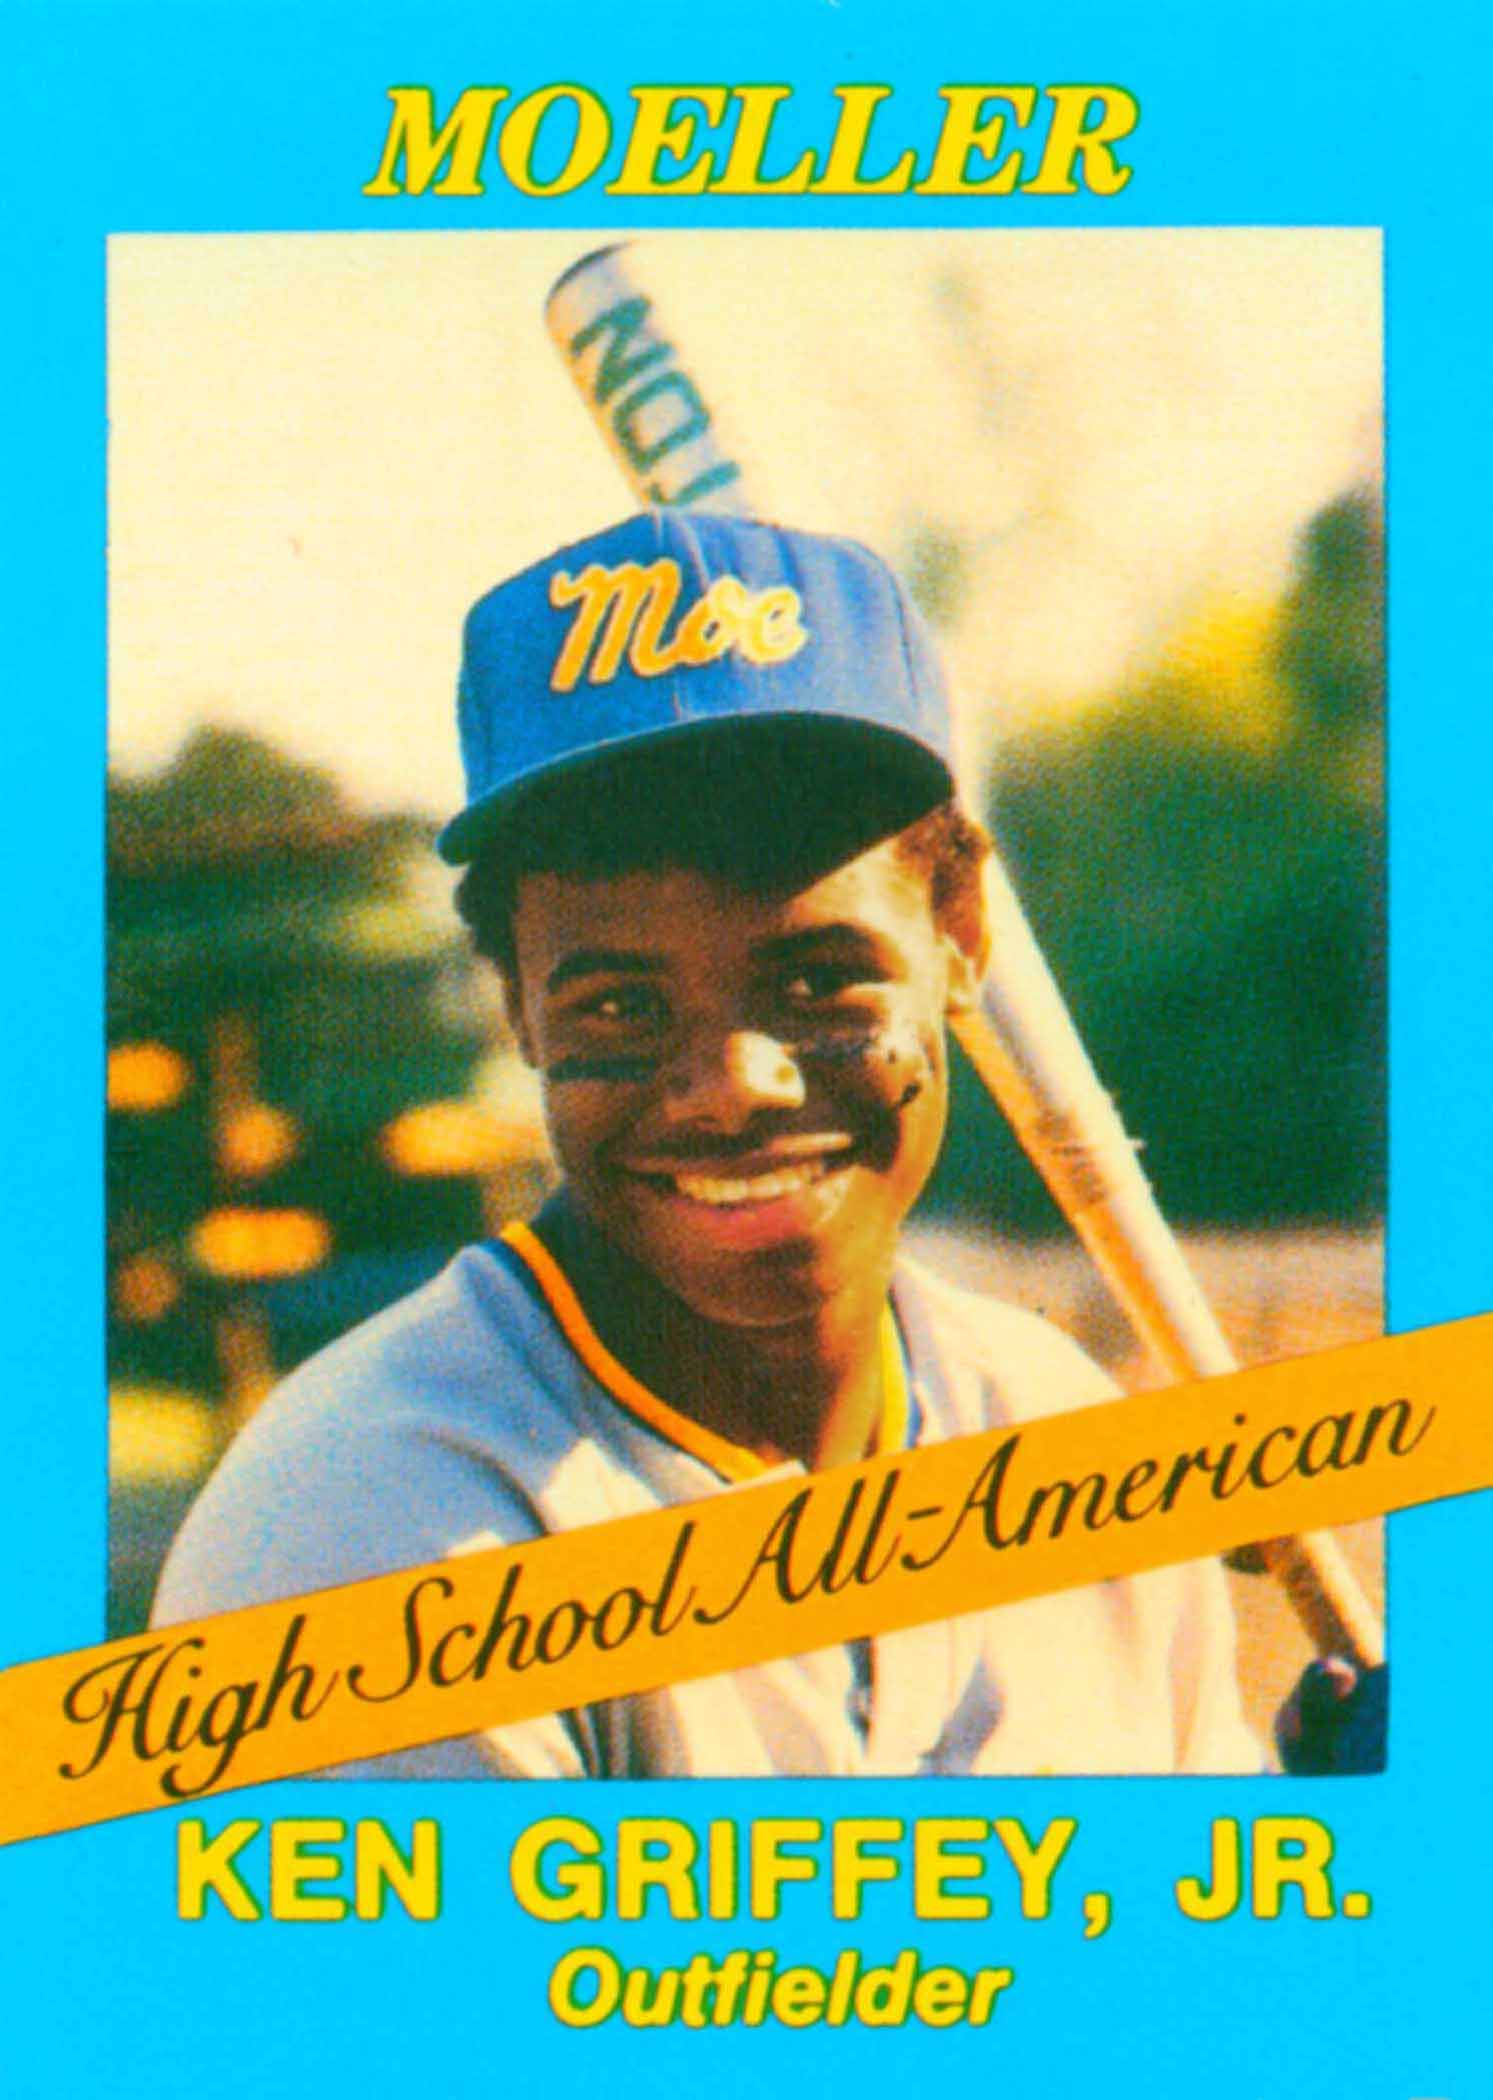 1987 Griffey Moeller High School